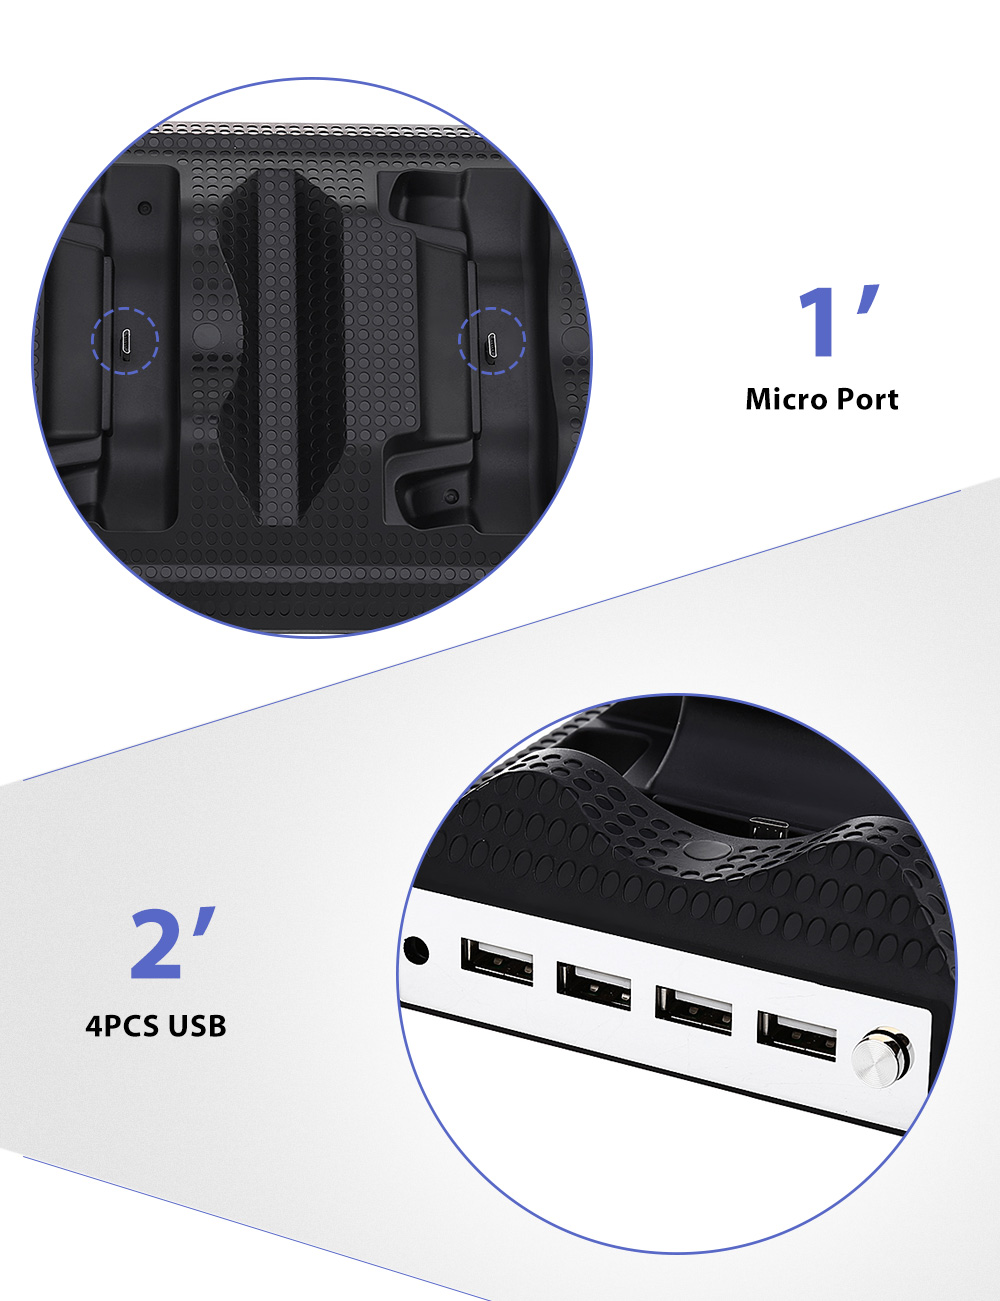 Dual Charger 4PCS USB Port Bracket for Xbox One S